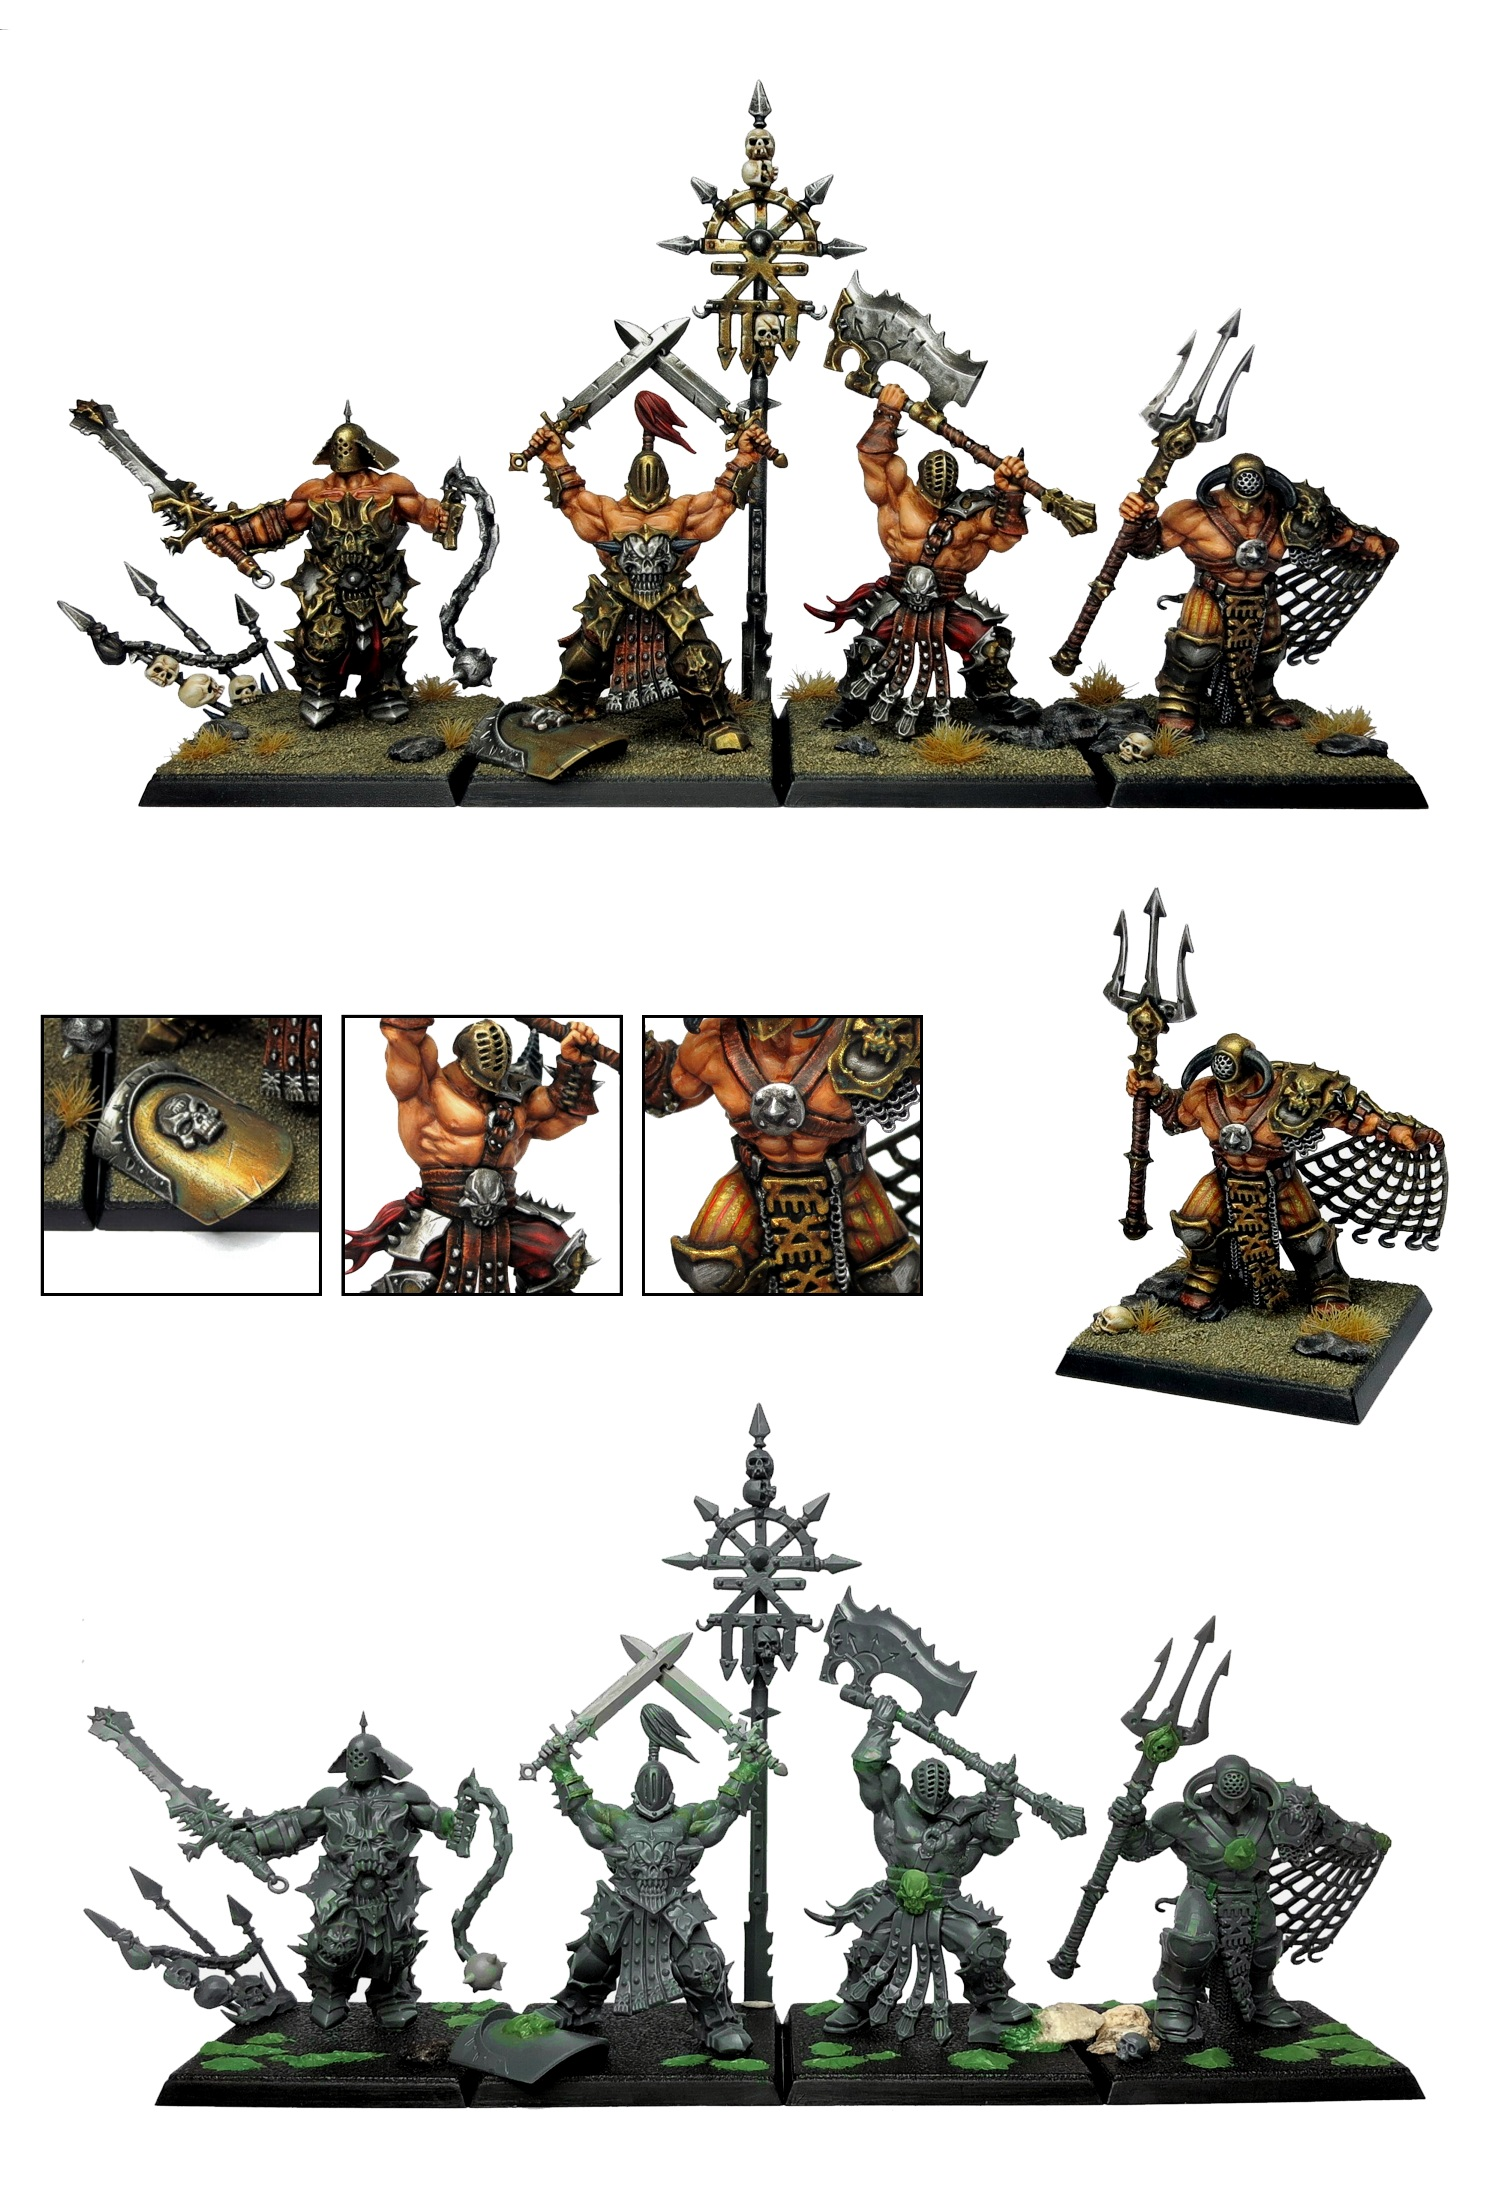 Khorne Bloodbound Skullreapers Chaos Gladiators Pitfighters